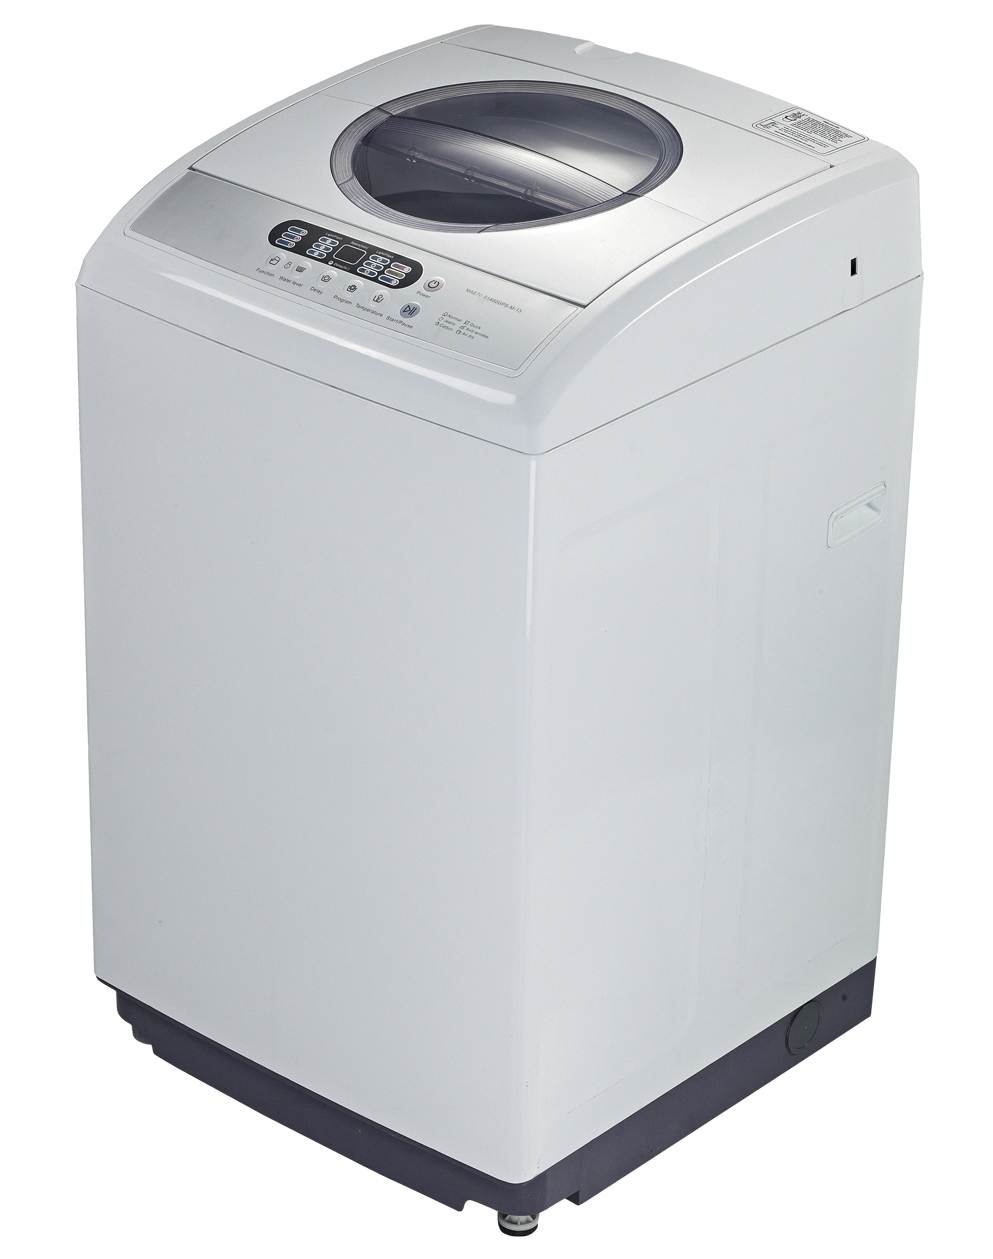 washing machine, ram png image pngpix #20619